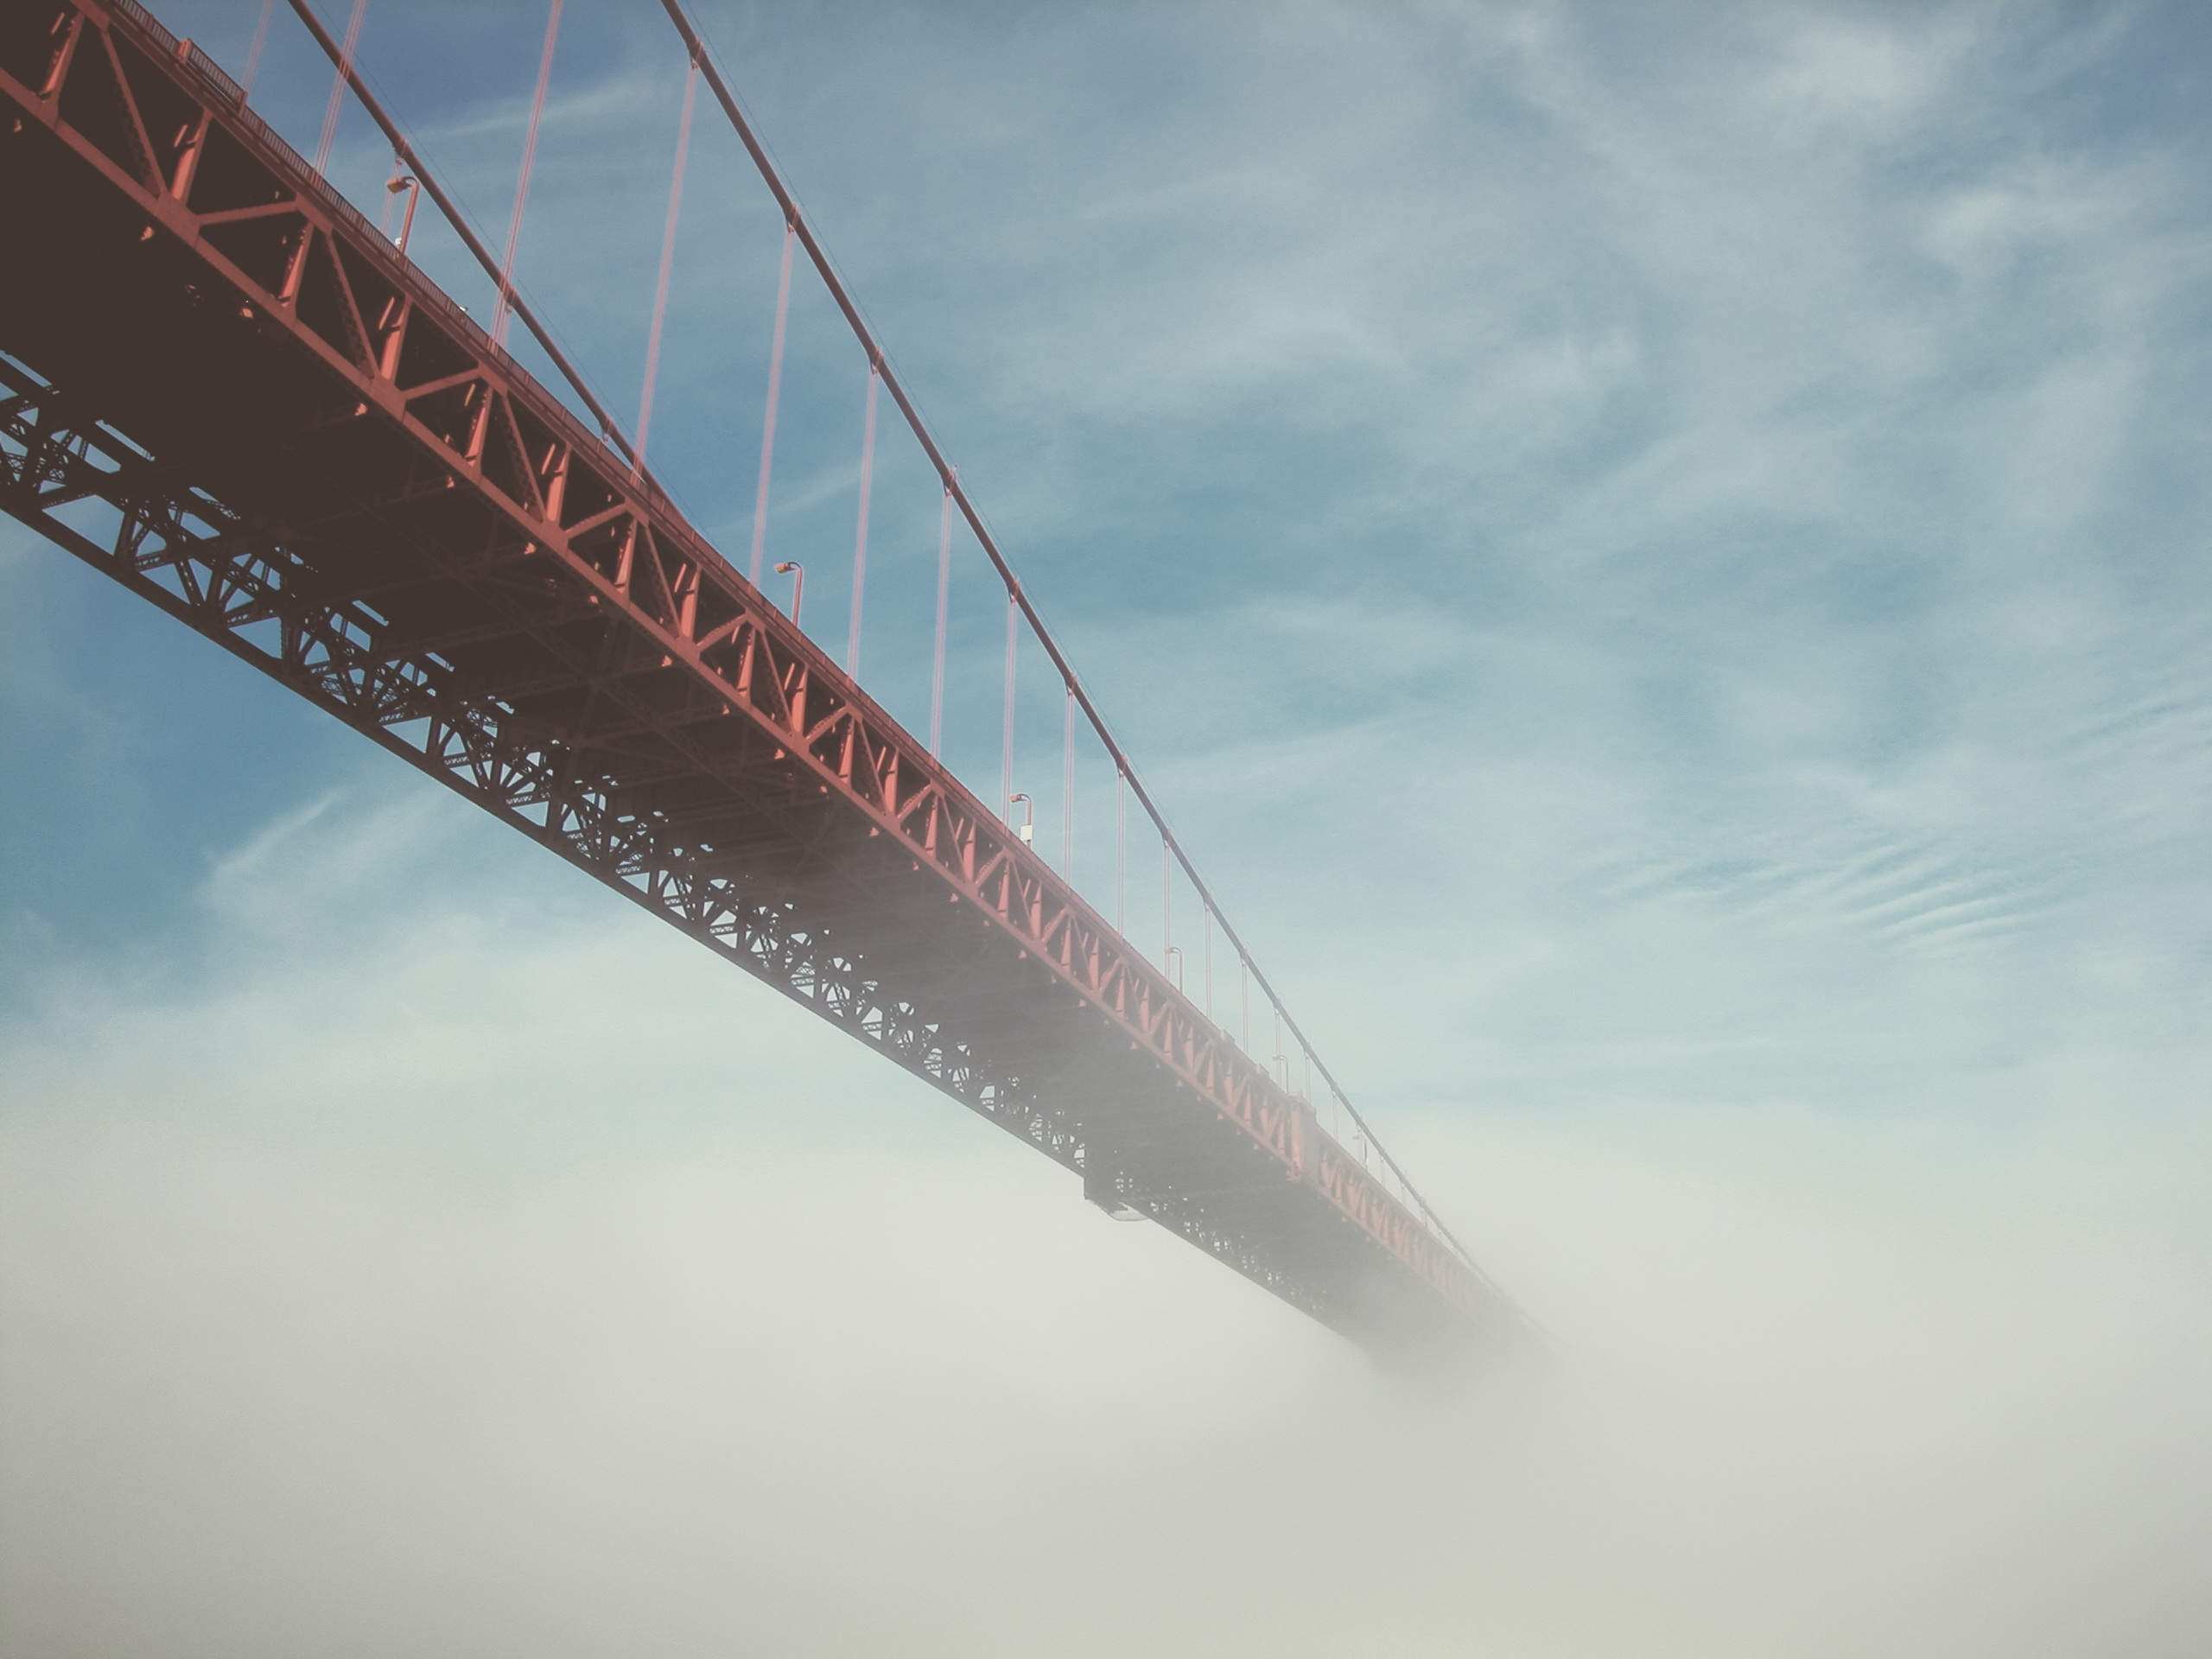 Bridge In The Mist, Architecture, Bridge, Engineering, Fog, HQ Photo